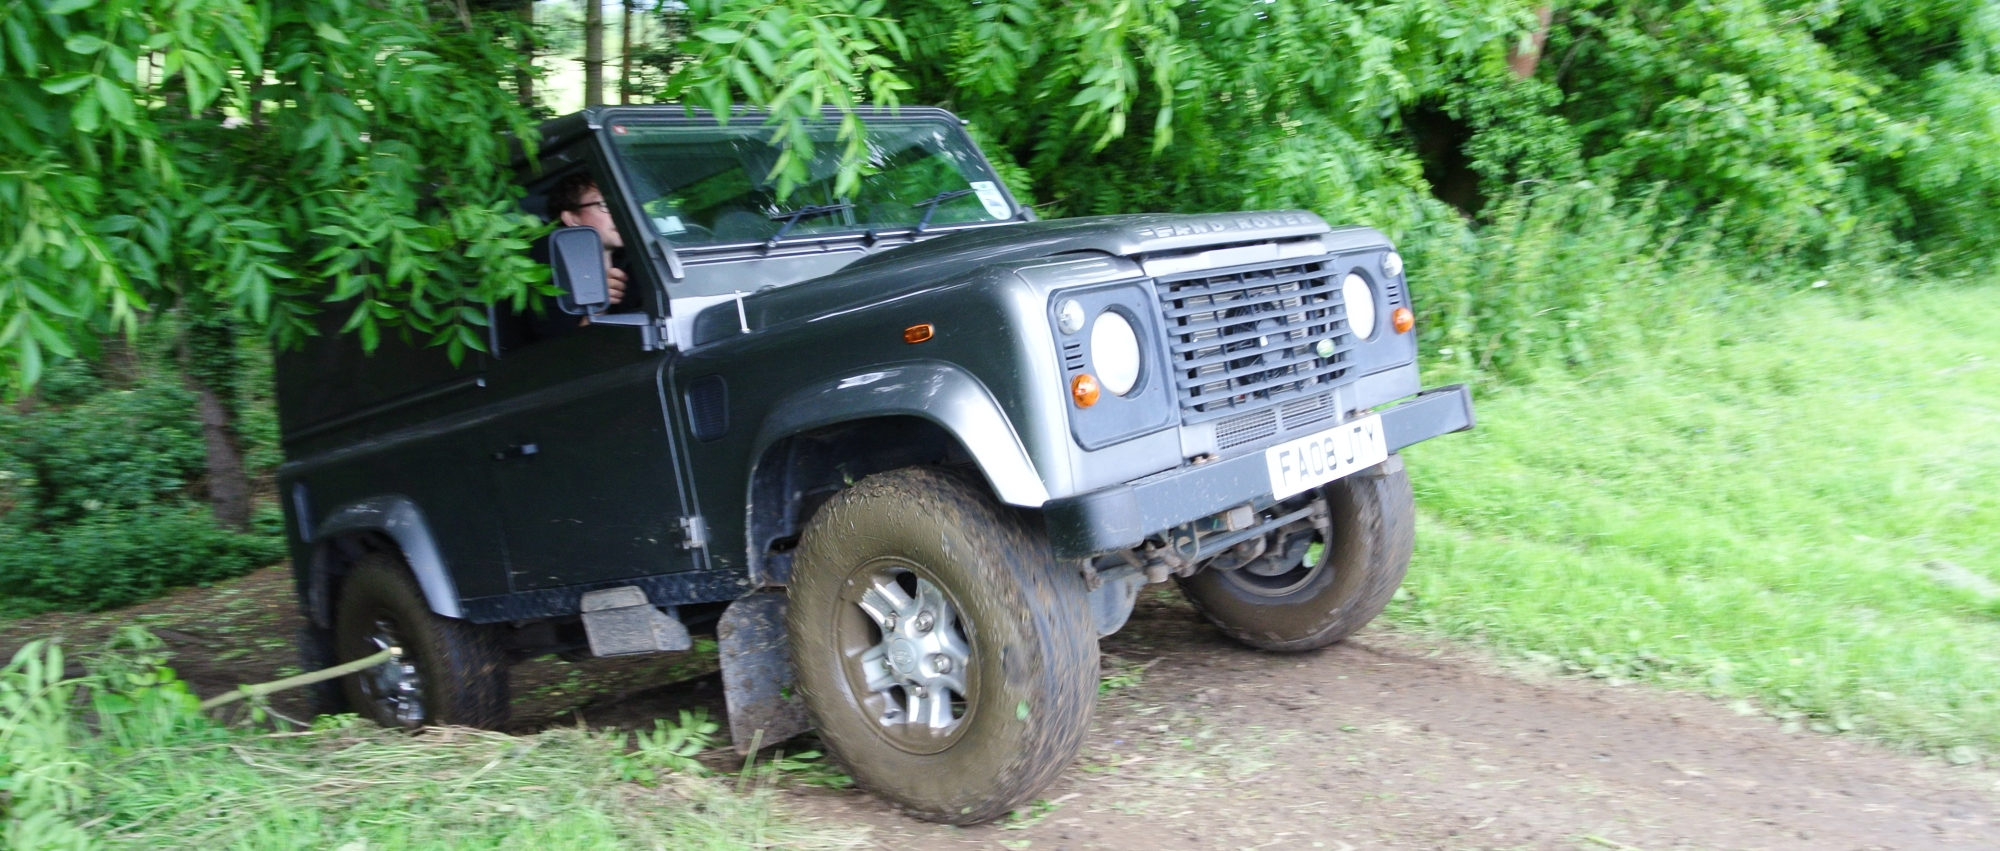 off road driving course at Ashtree farm